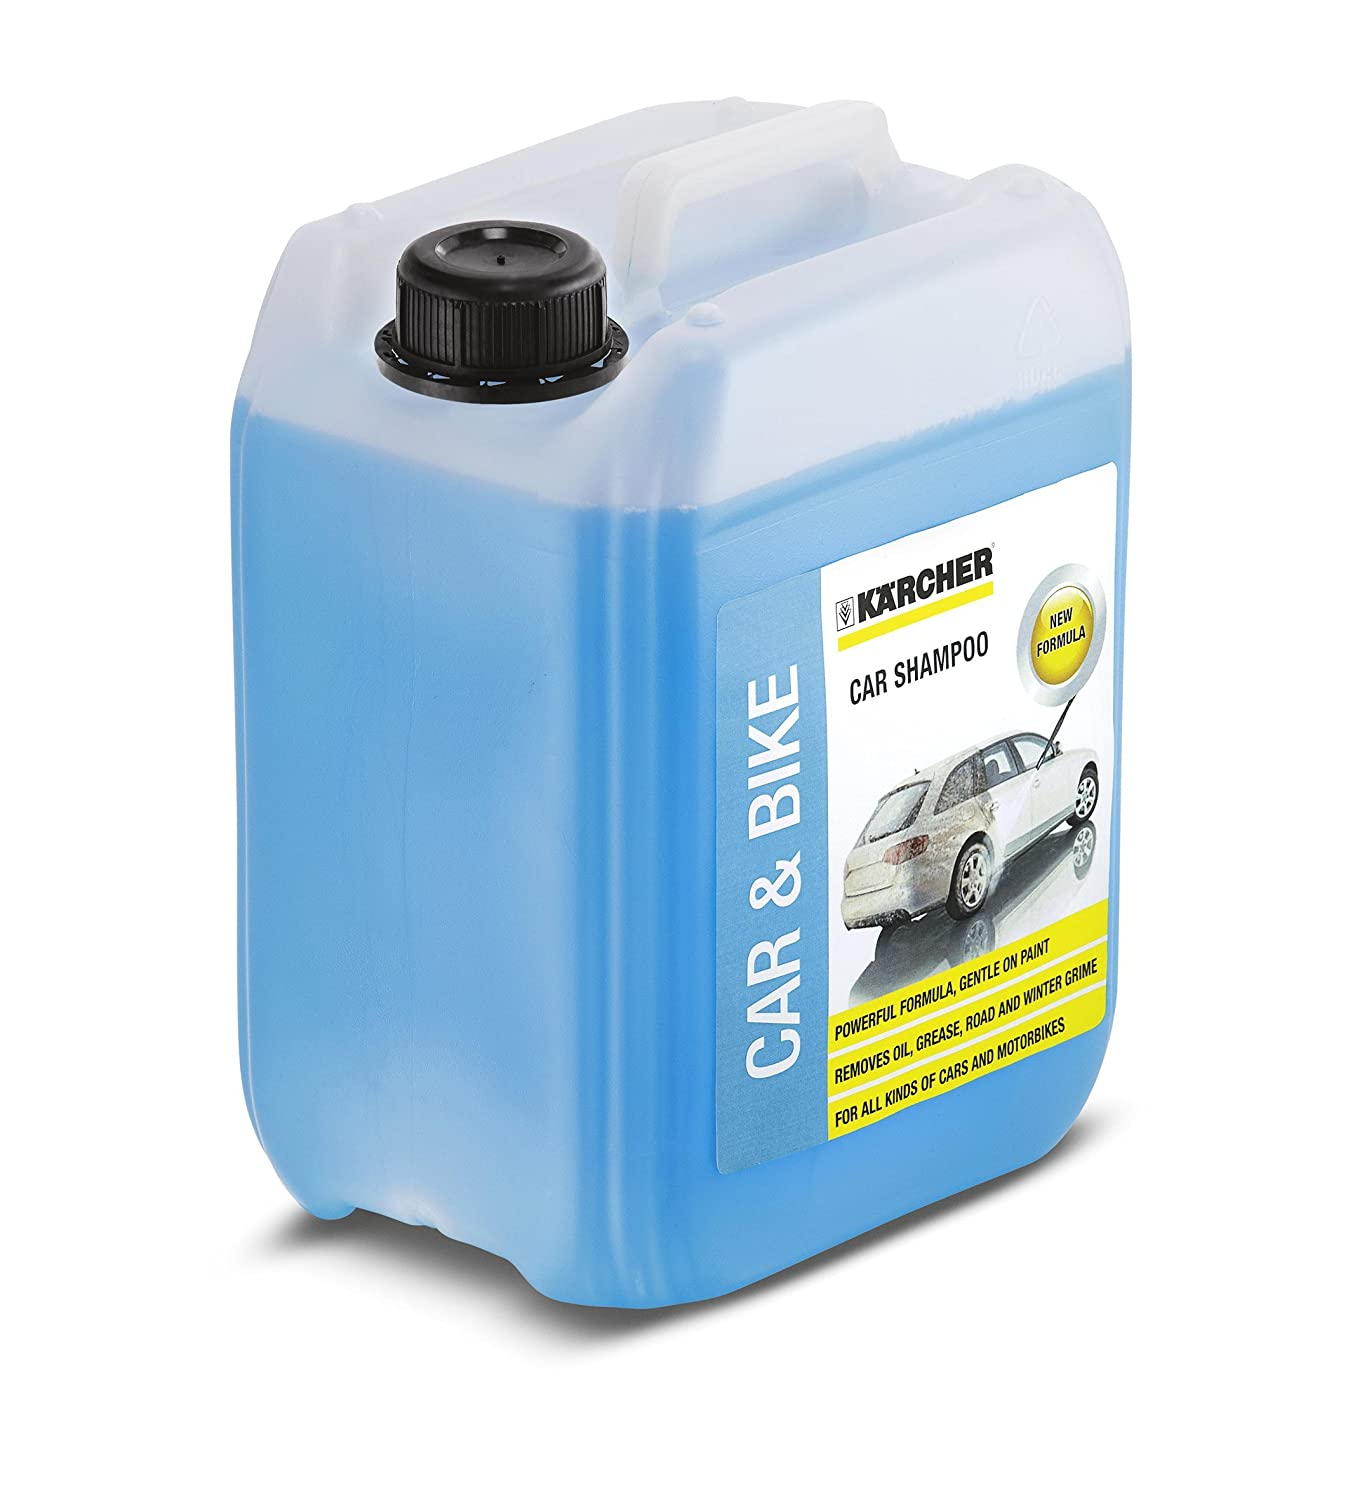 Kä rcher Shampoing pour voiture, Wood Cleaner - 5L Canister Kärcher